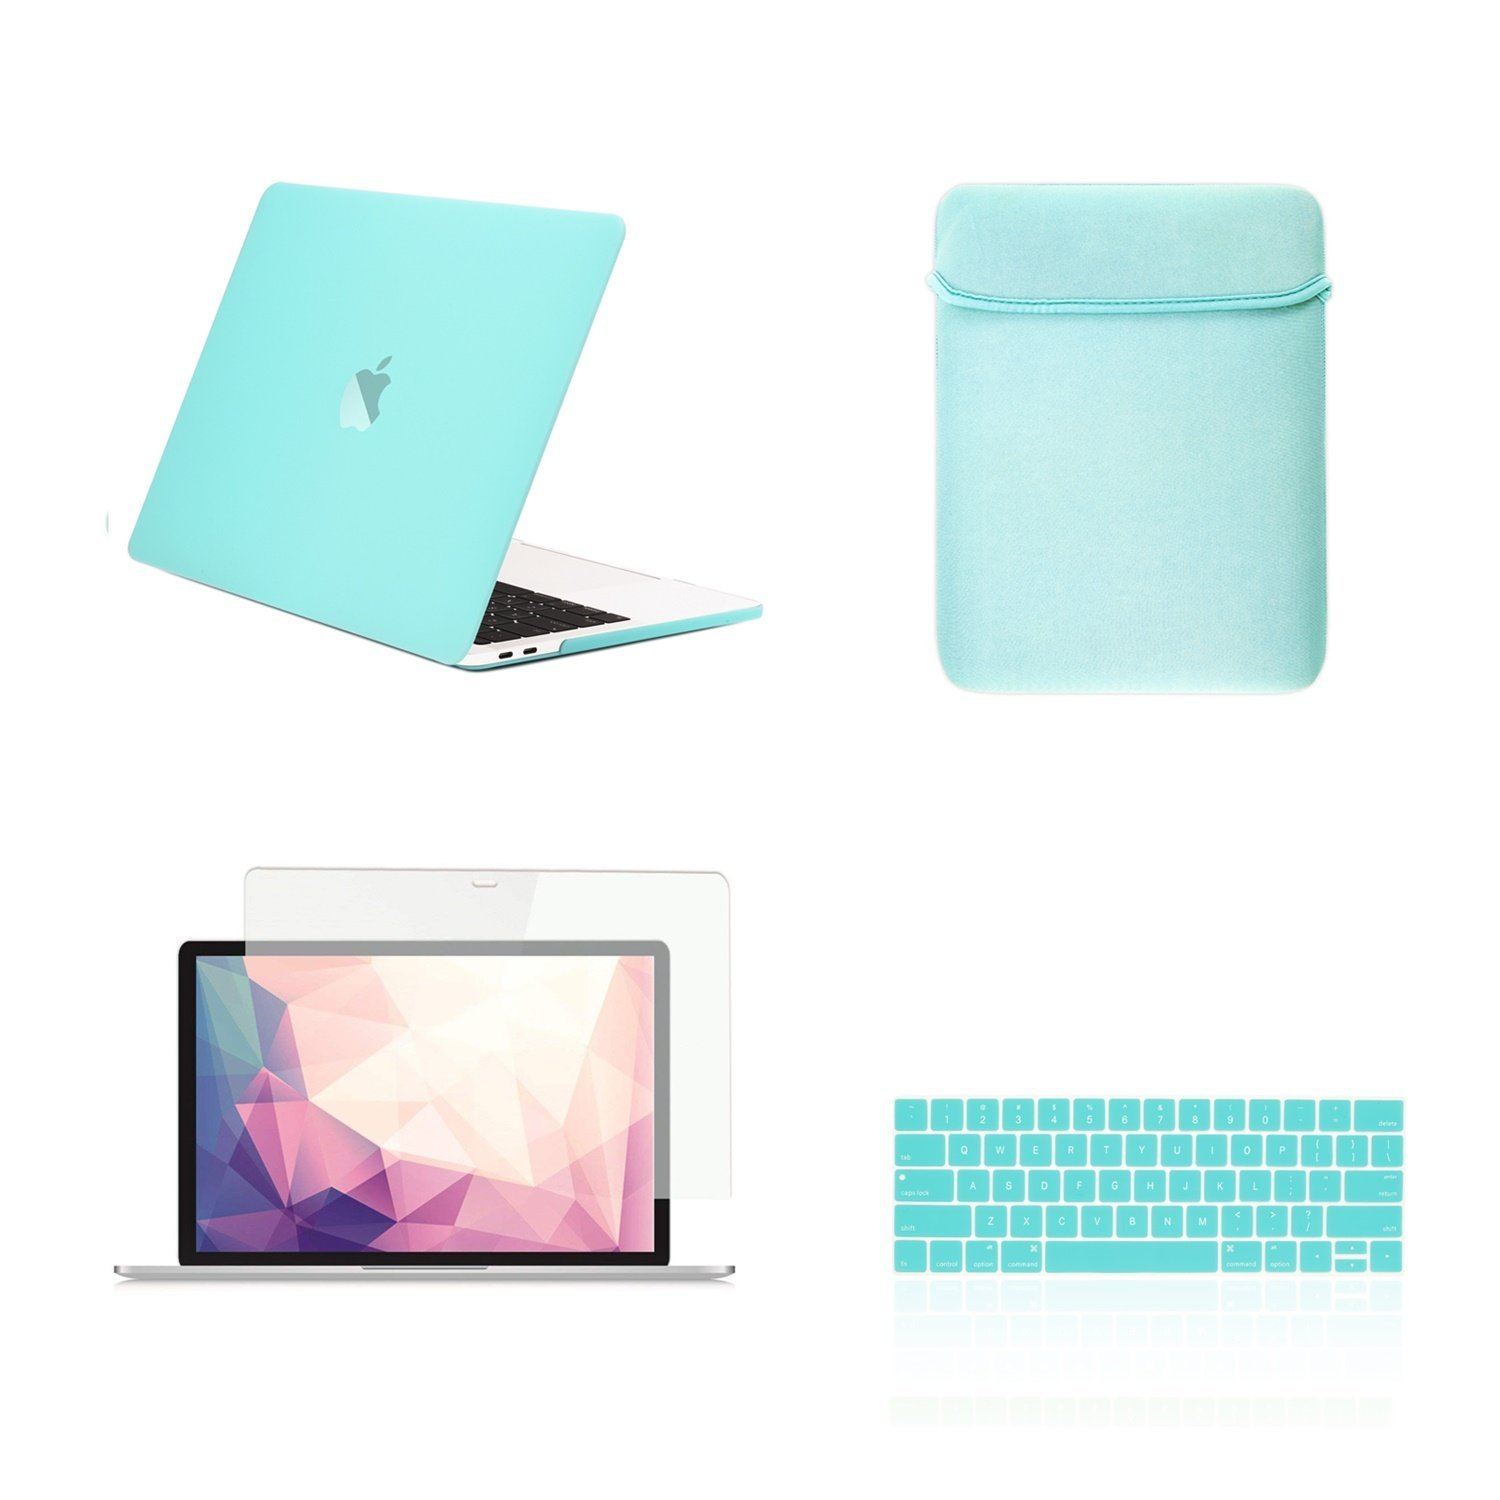 TOP CASE - 4 in 1 Matte Hard Case,Keyboard Cover,Sleeve Bag,Screen Protector Compatible with MacBook Pro 13-inch A1989,A1706 with Touch Bar/A1708 Without Touch Bar (Release 2017,2016,2018) - Hot Blue